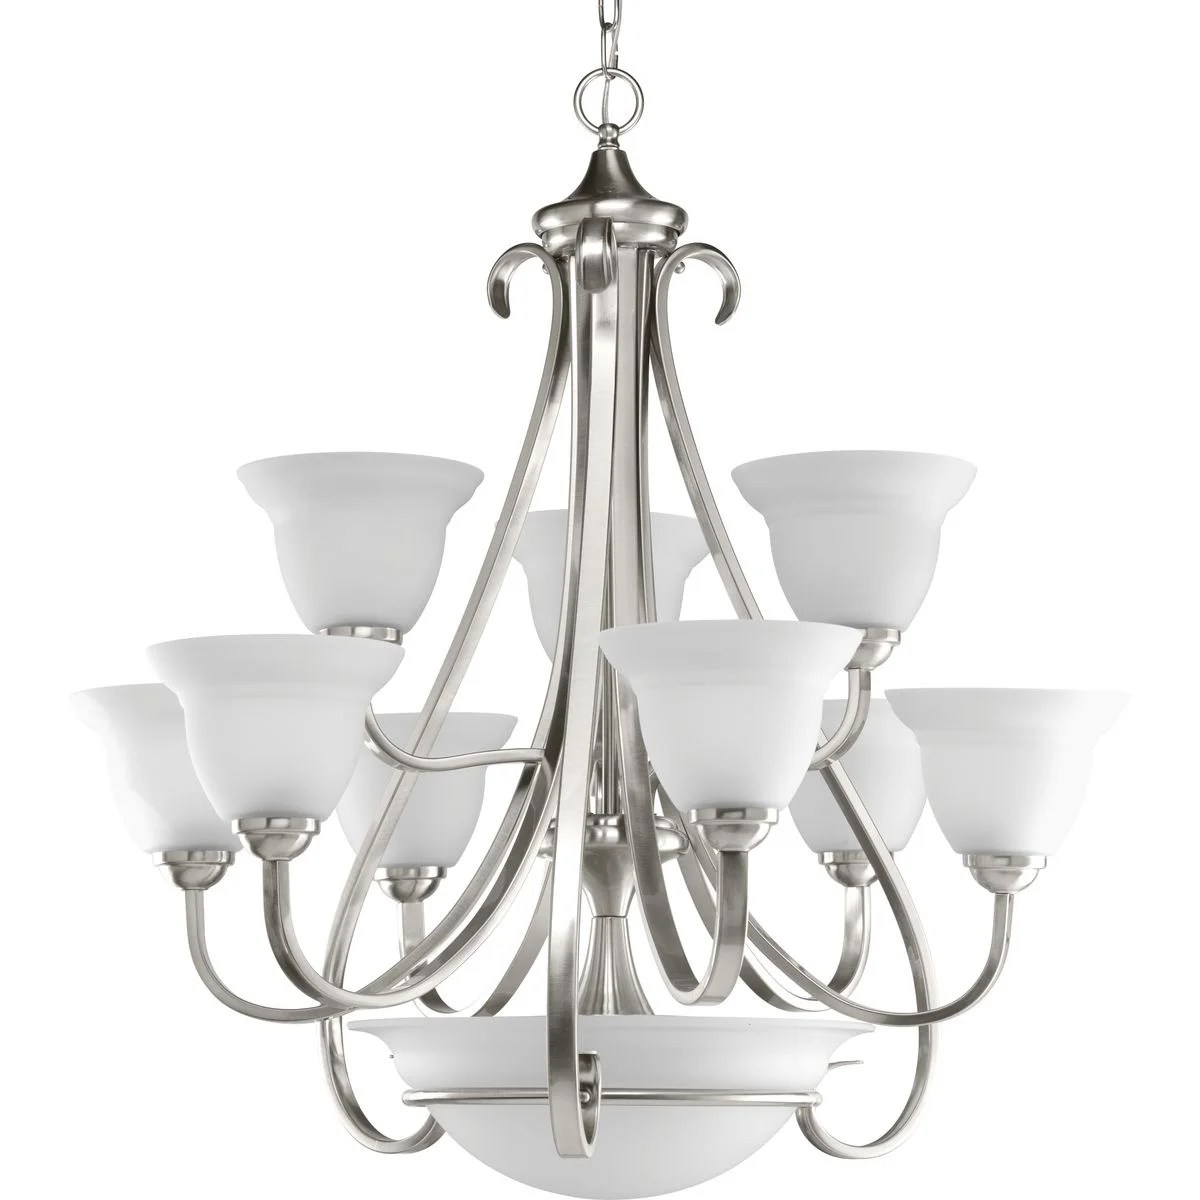 torino collection 9 light brushed nickel etched glass transitional chandelier light n a